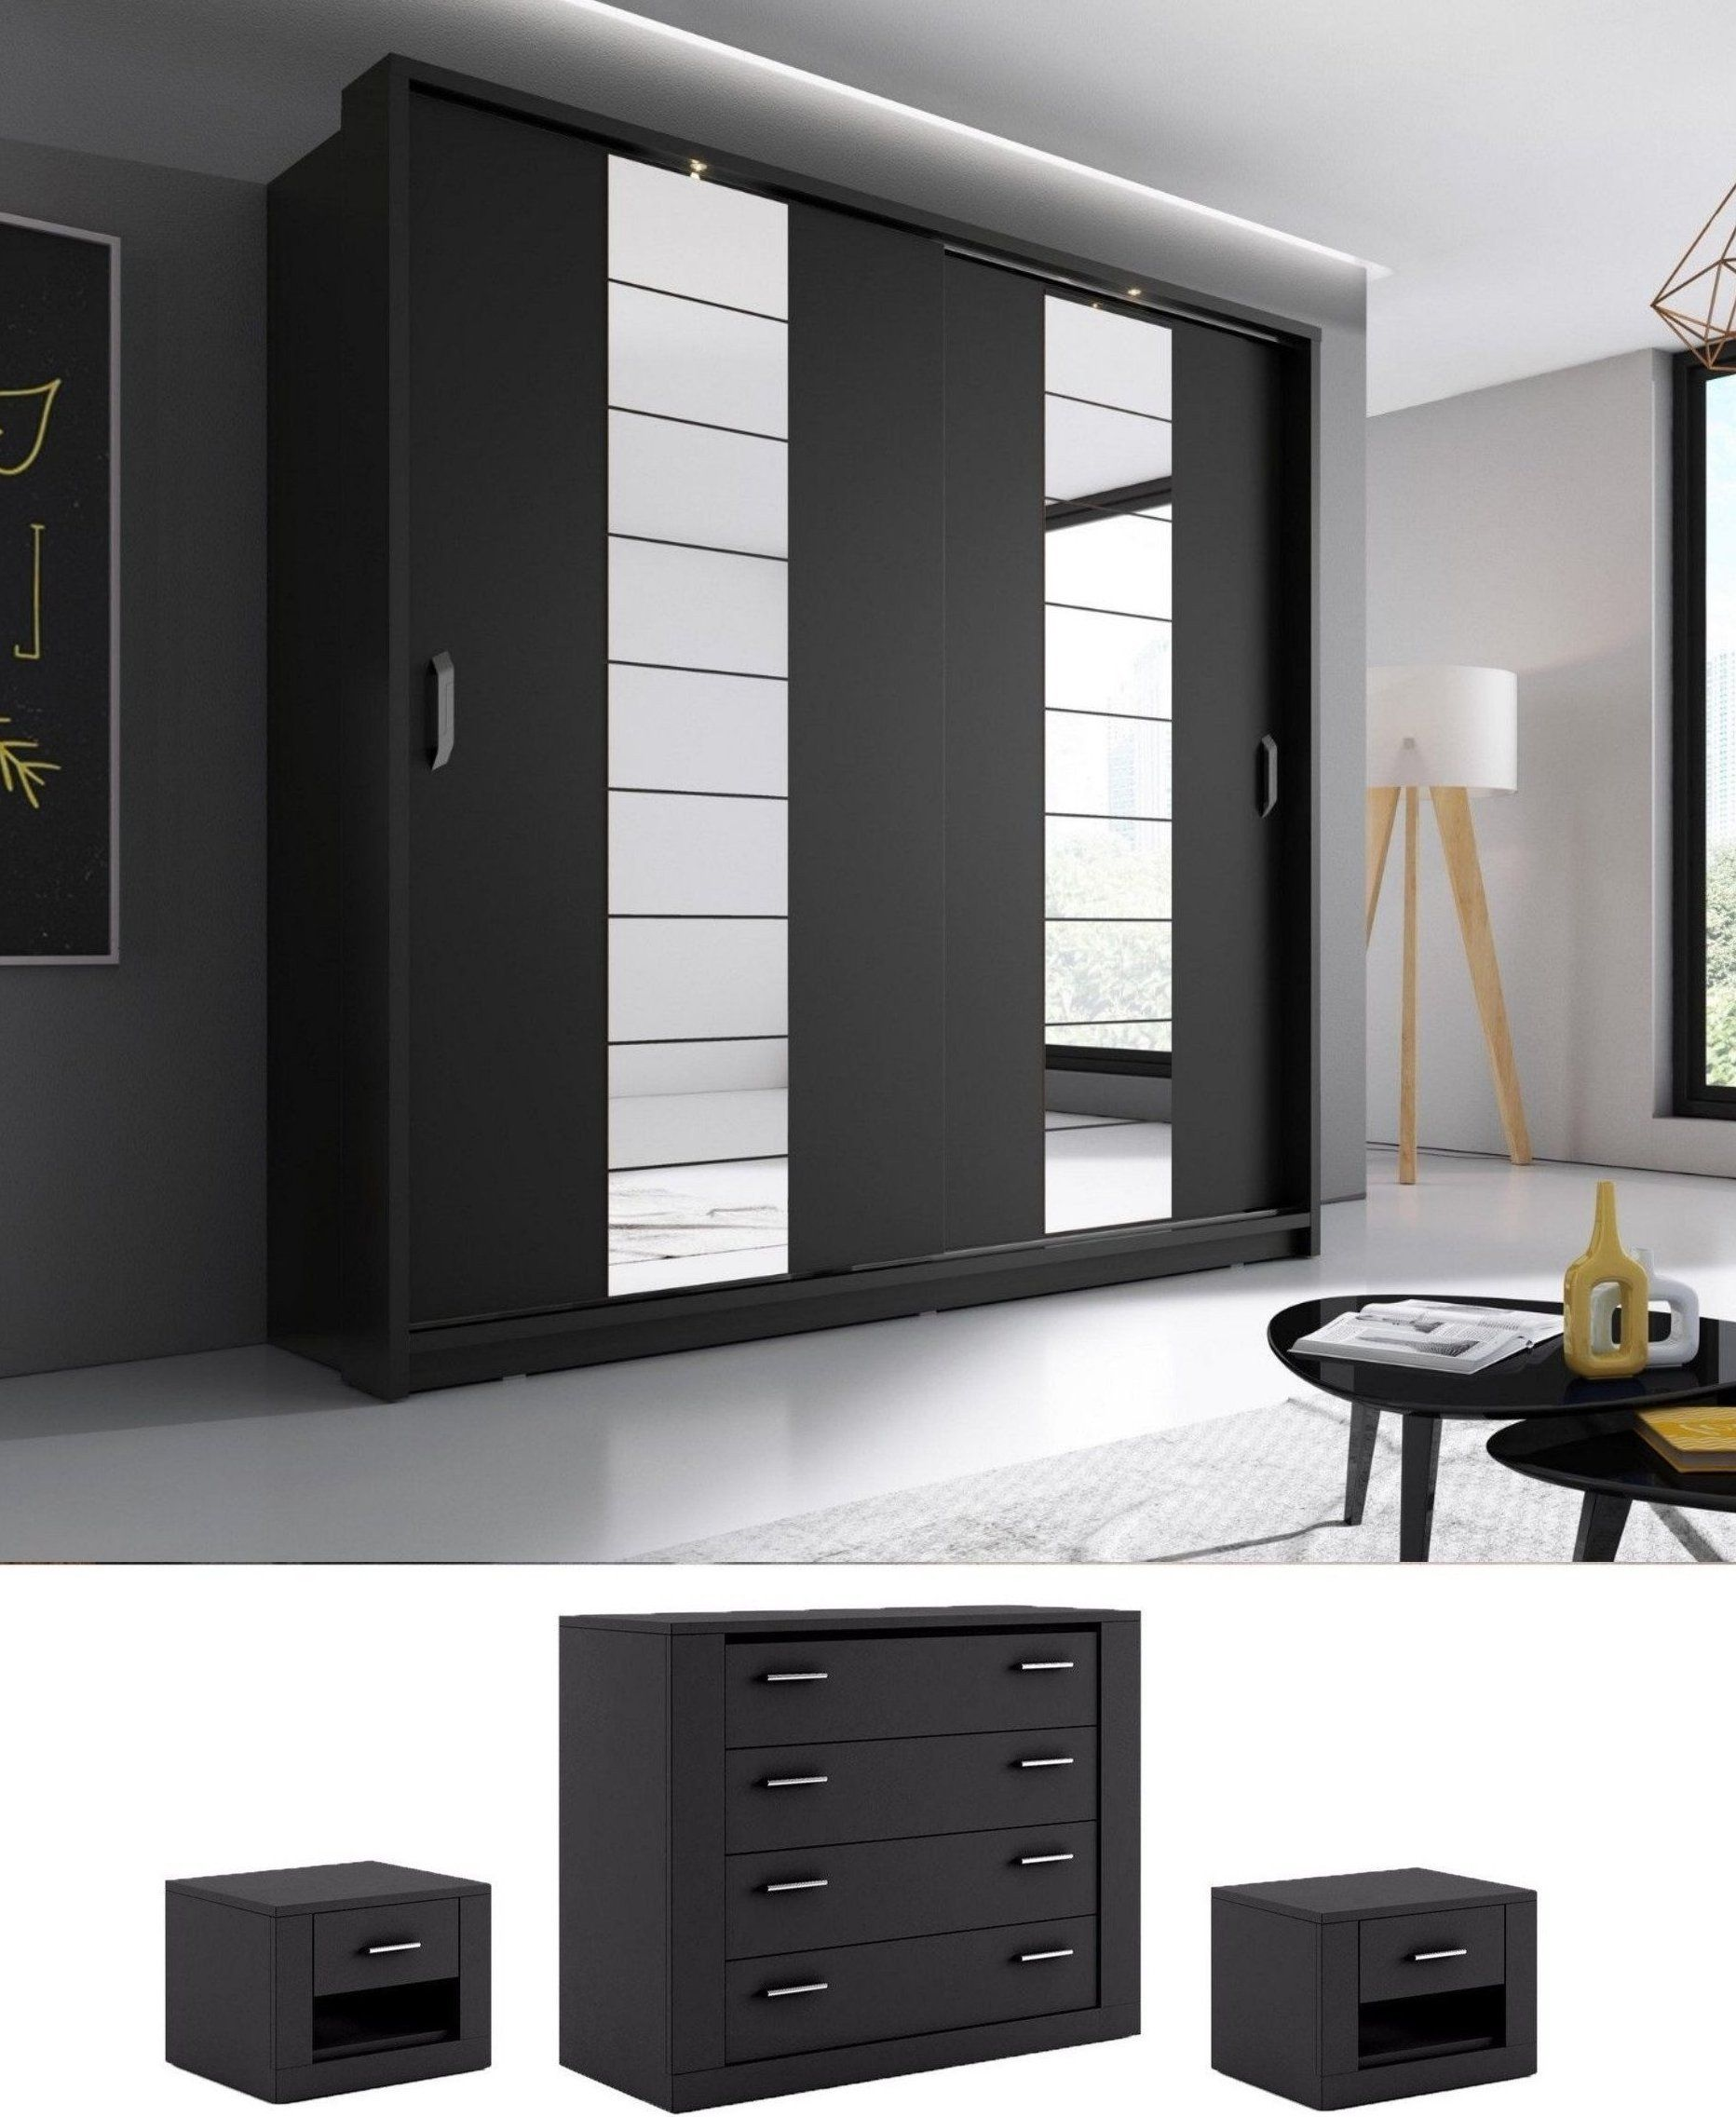 Black Mirror Bedroom Set Bedroom Set Arti 14 Sliding Door Wardrobe 220cm In Black Matt Bedroom Cabinets Bedroom Furniture Sets Bedroom Set